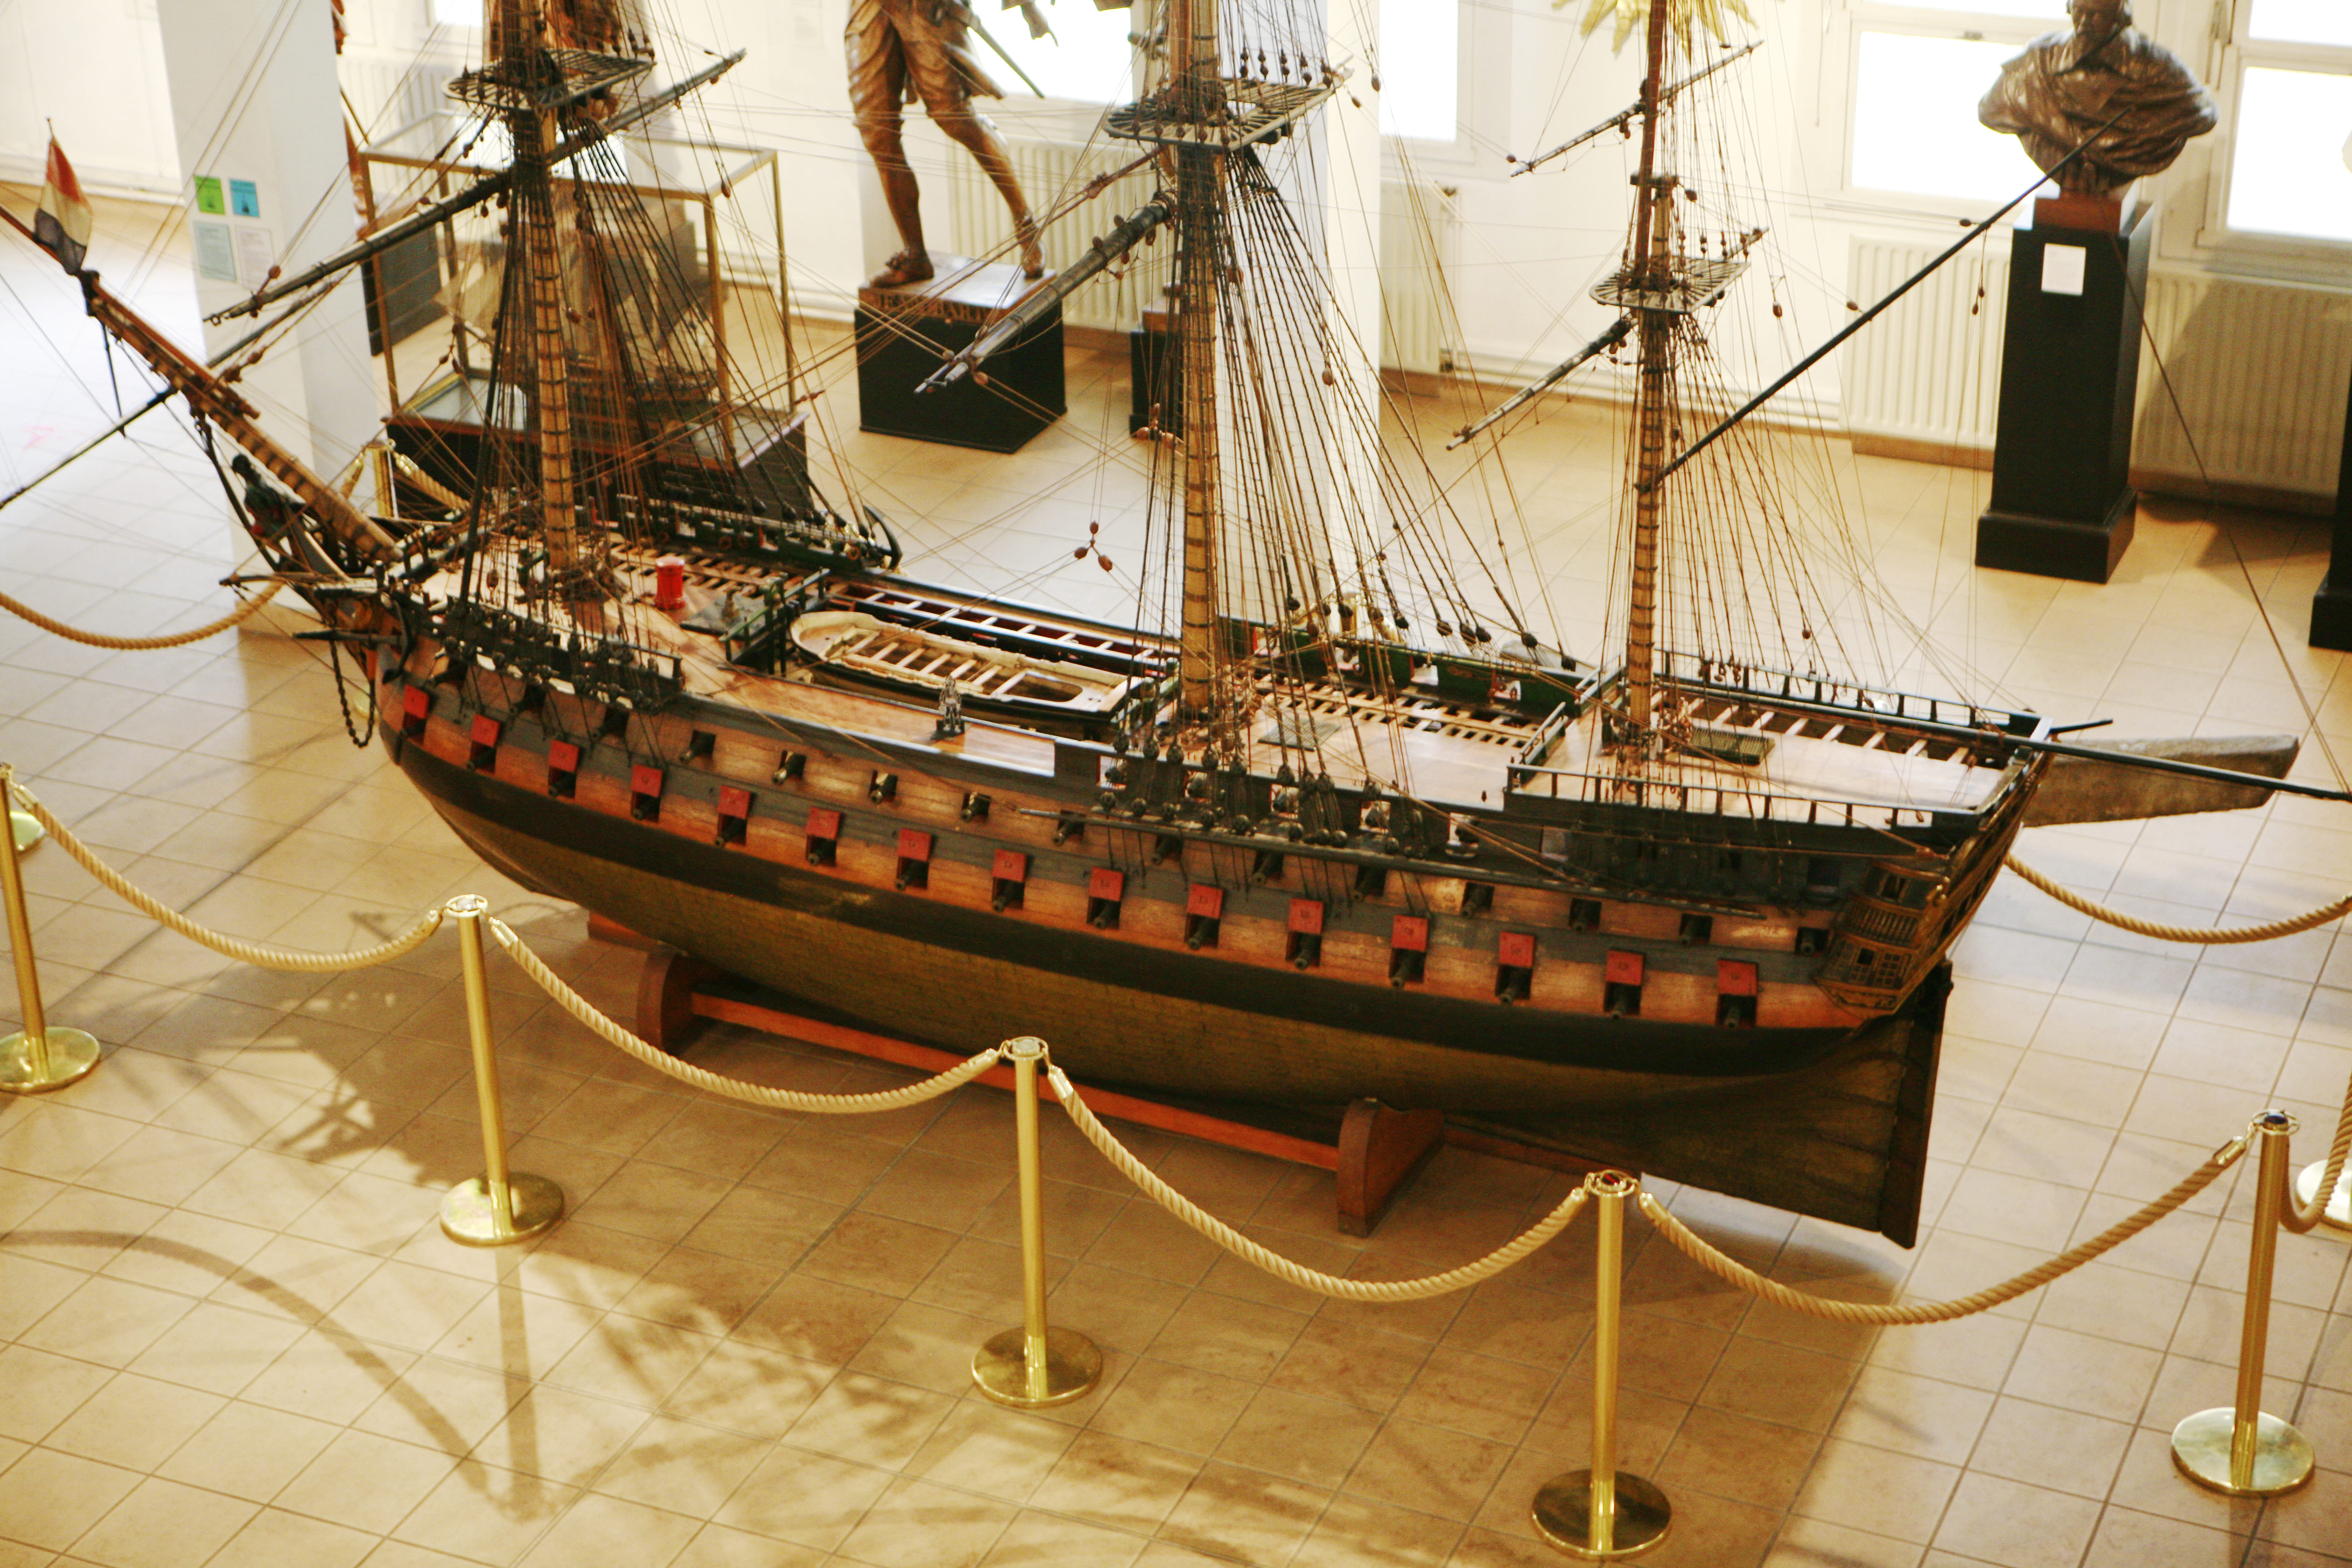 http://upload.wikimedia.org/wikipedia/commons/9/95/French_ship_Duquesne_mg_5192.jpg